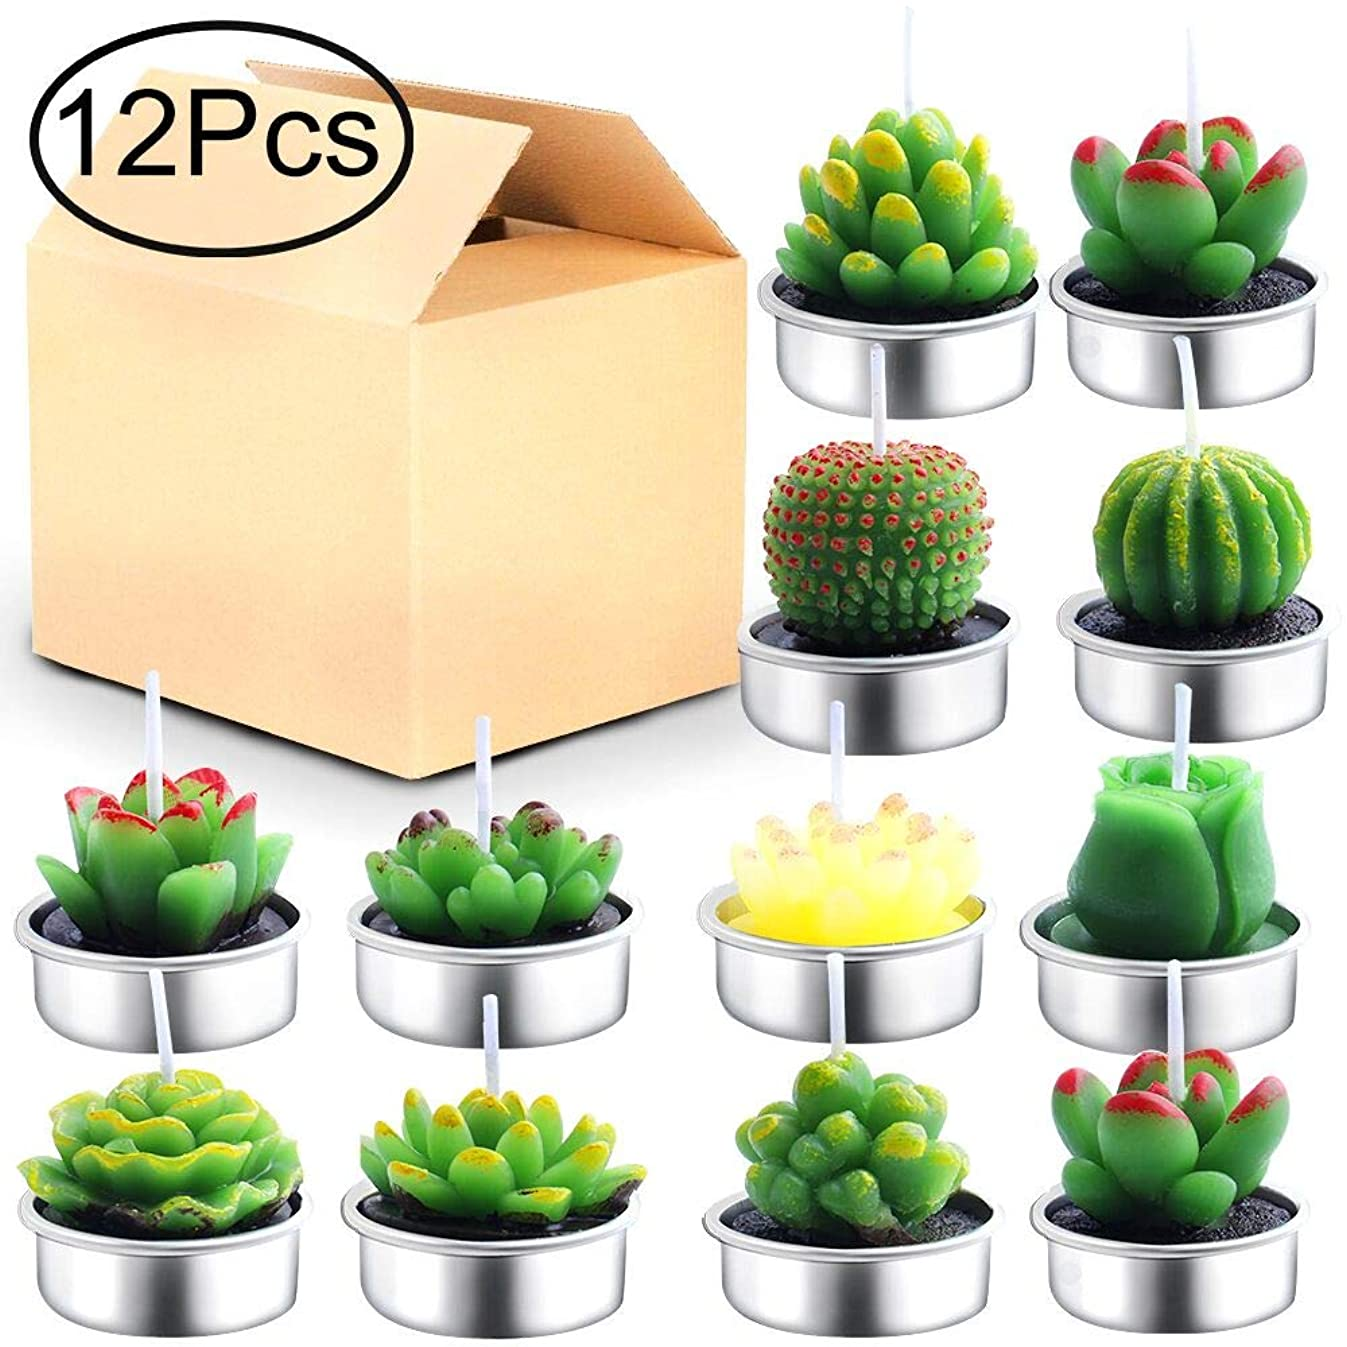 Outee Cactus Tealight Candles 12 Pack Handmade Delicate Succulent Cactus Candles Flameless Aromatherapy 12 Designs for for Birthday Party Wedding Spa